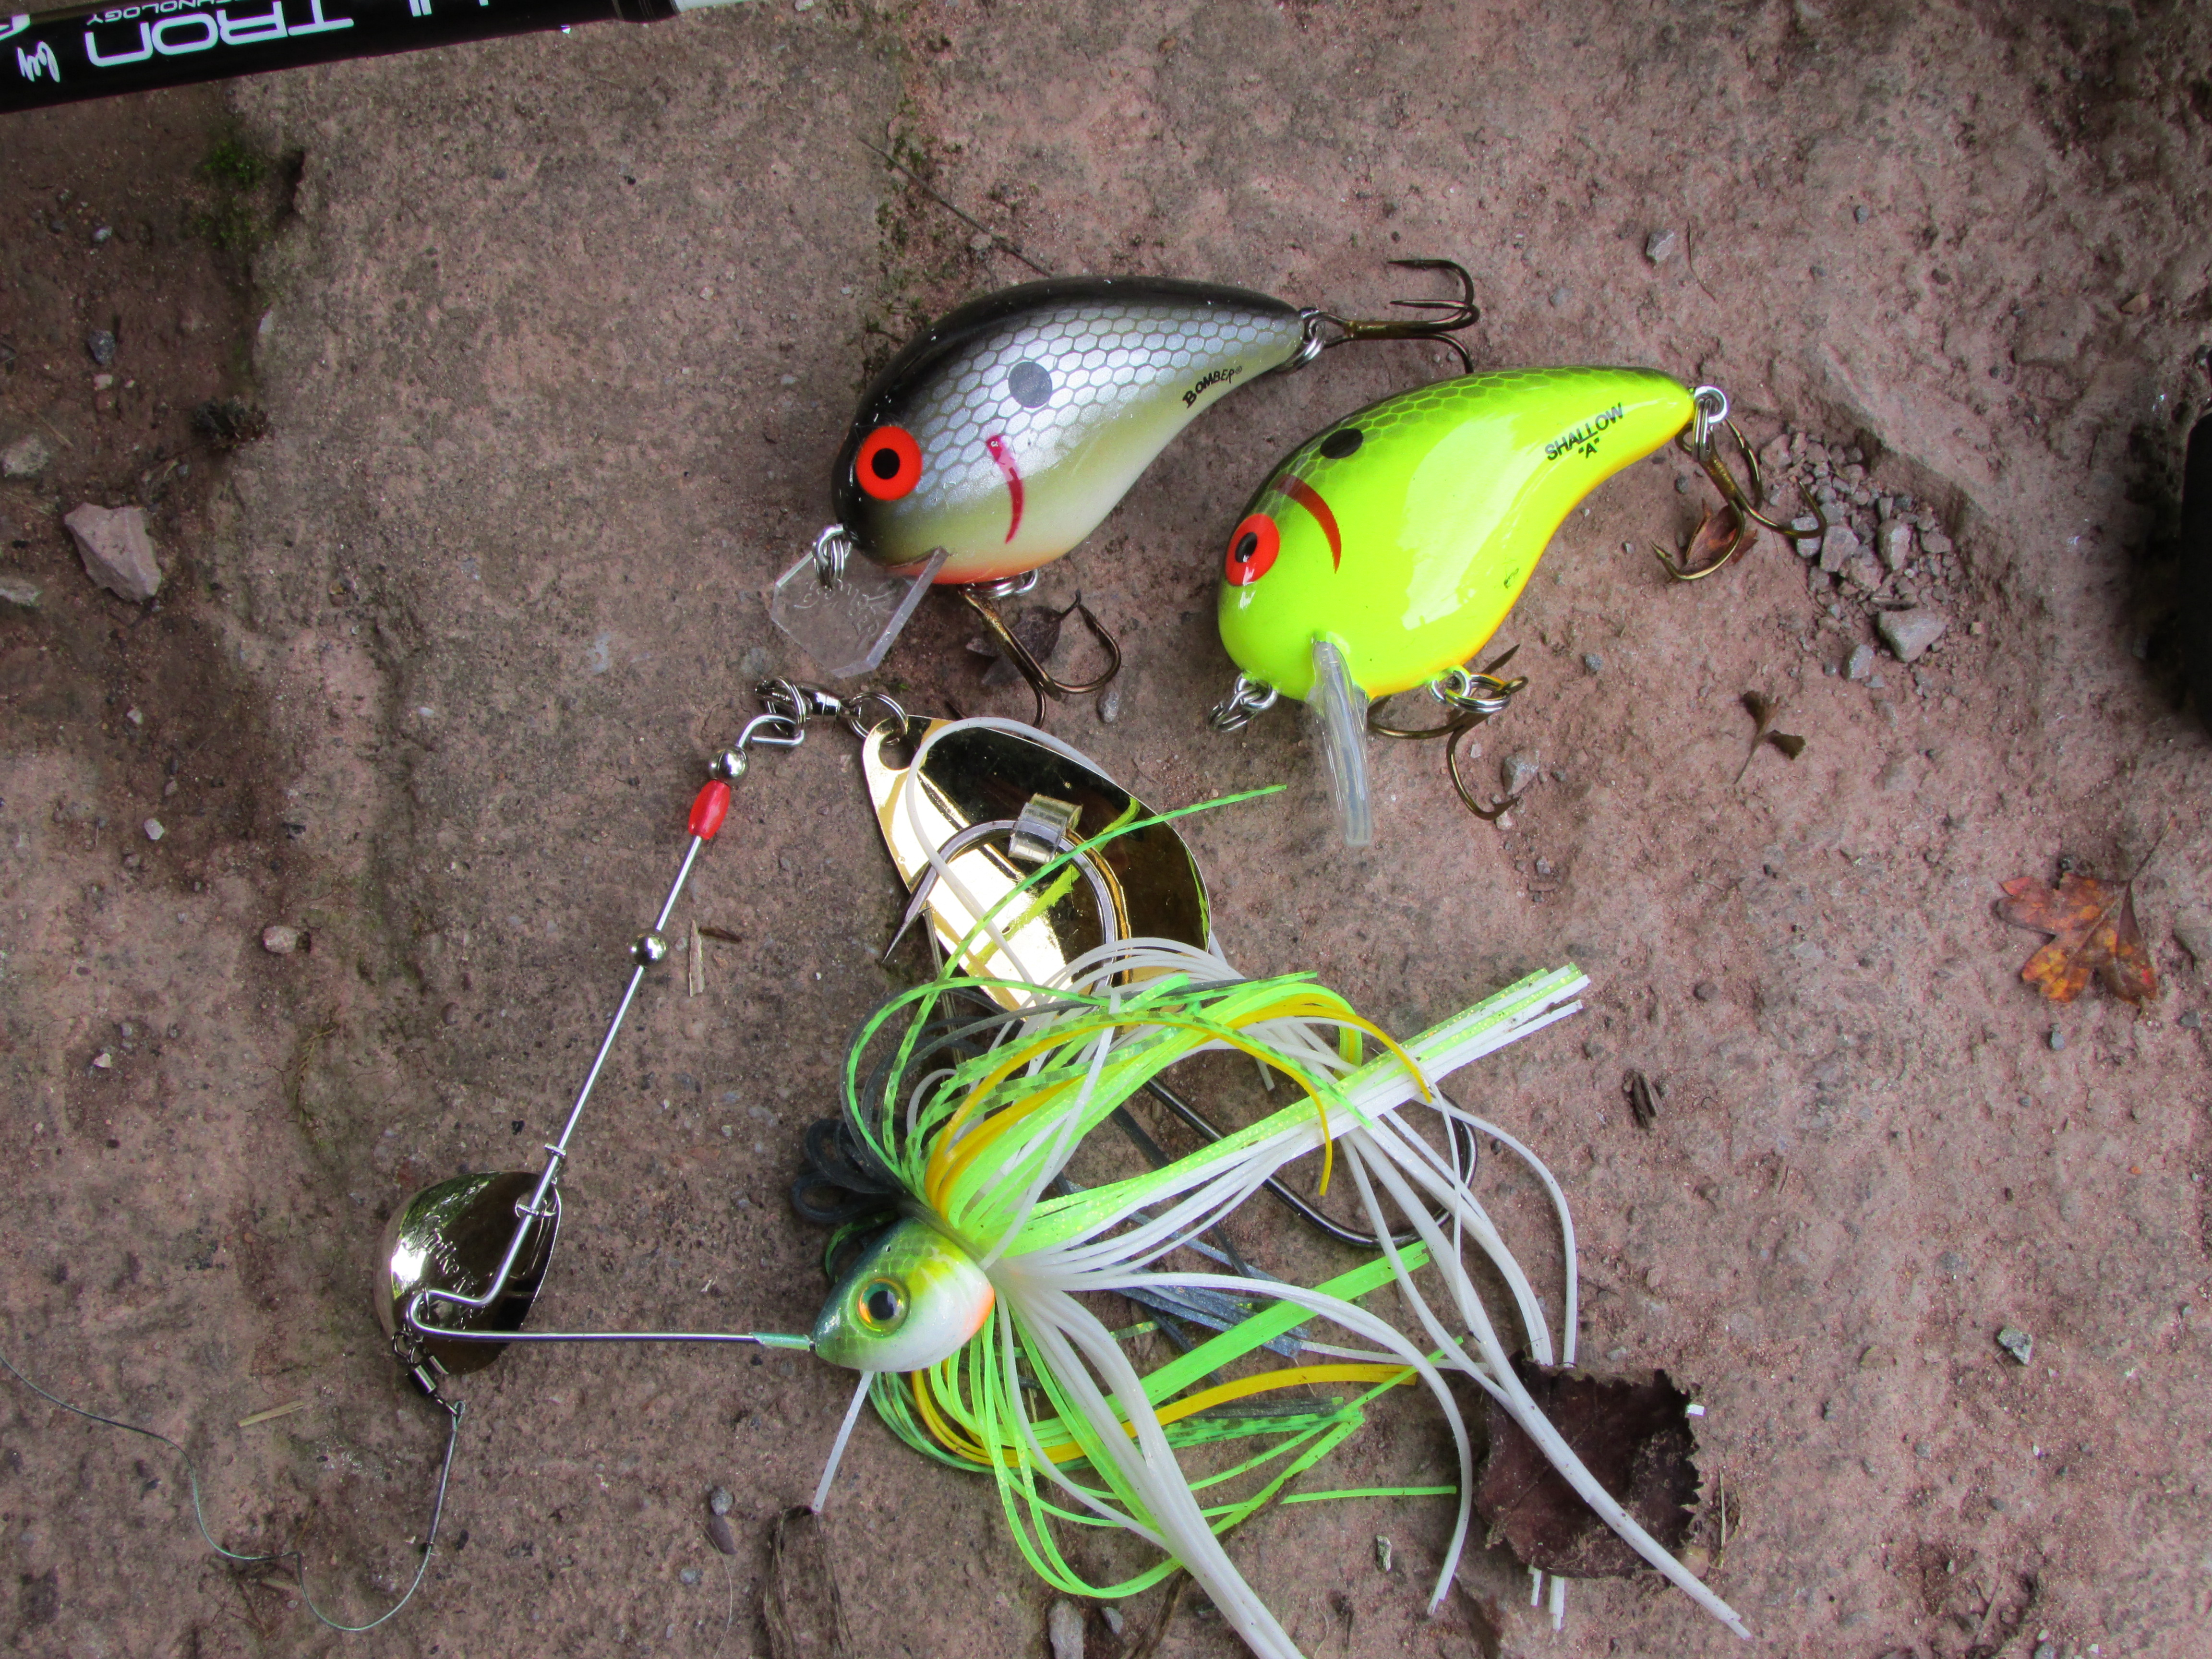 Fishing. Spoon-bait for pike